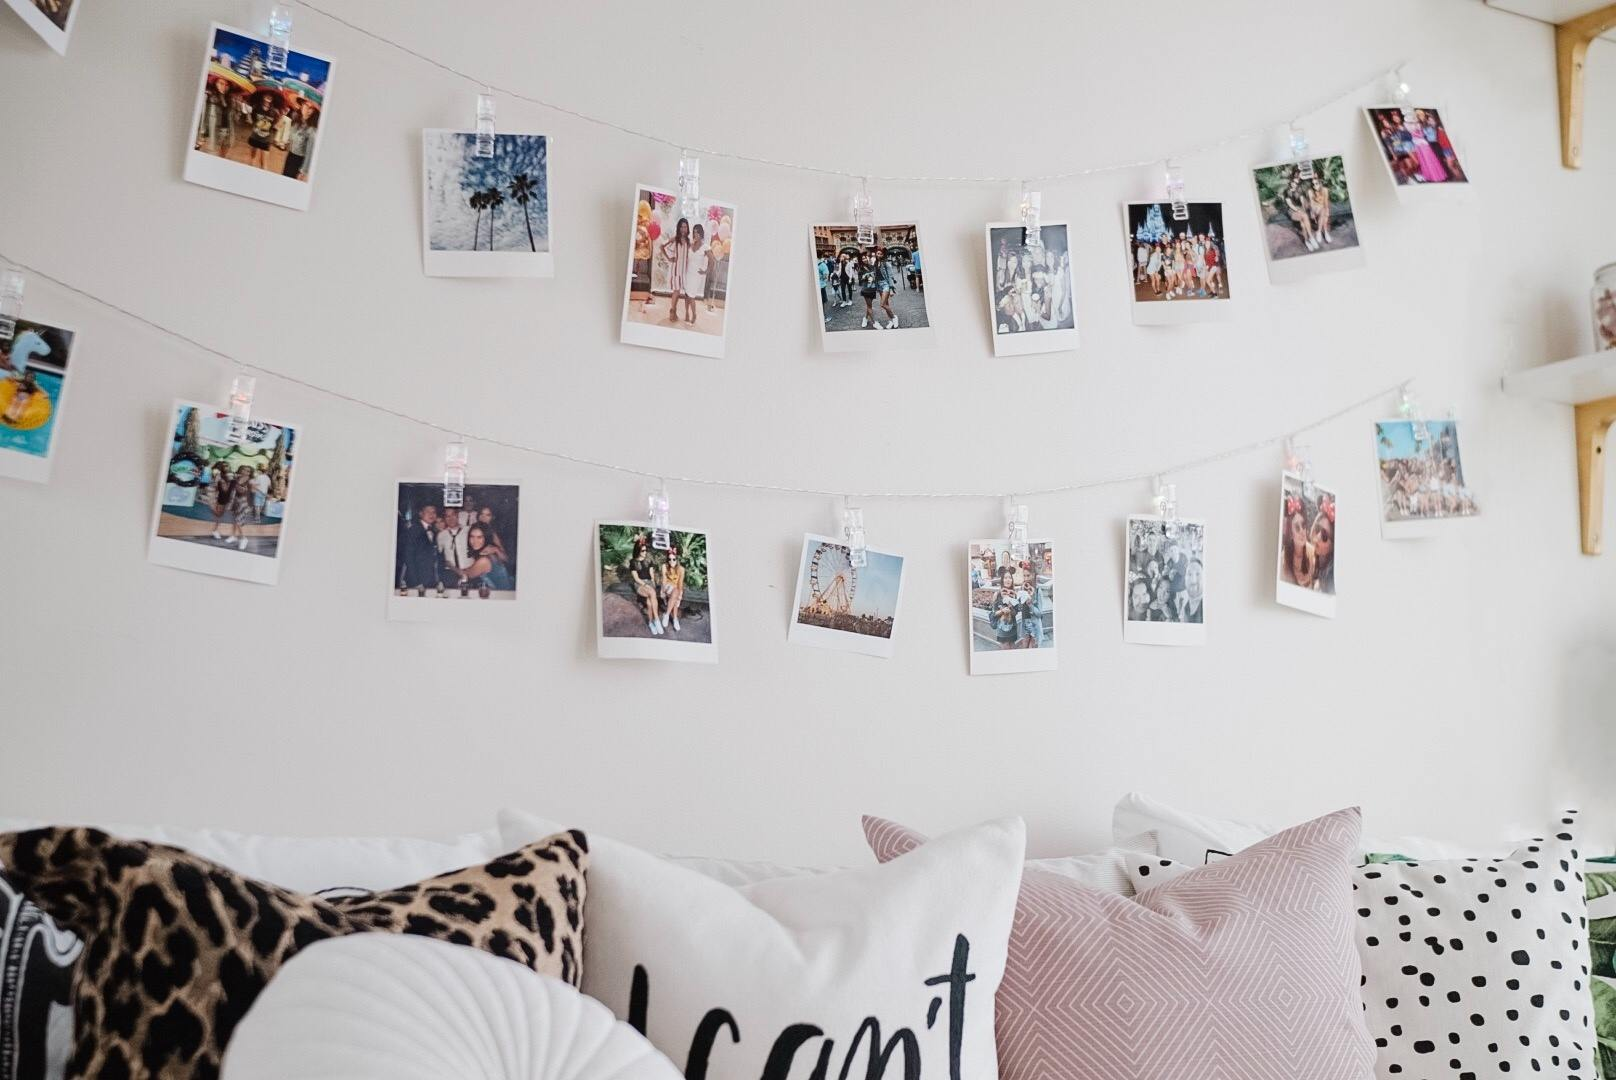 string lights with clothespins full of polaroid photos great for dorm room decor